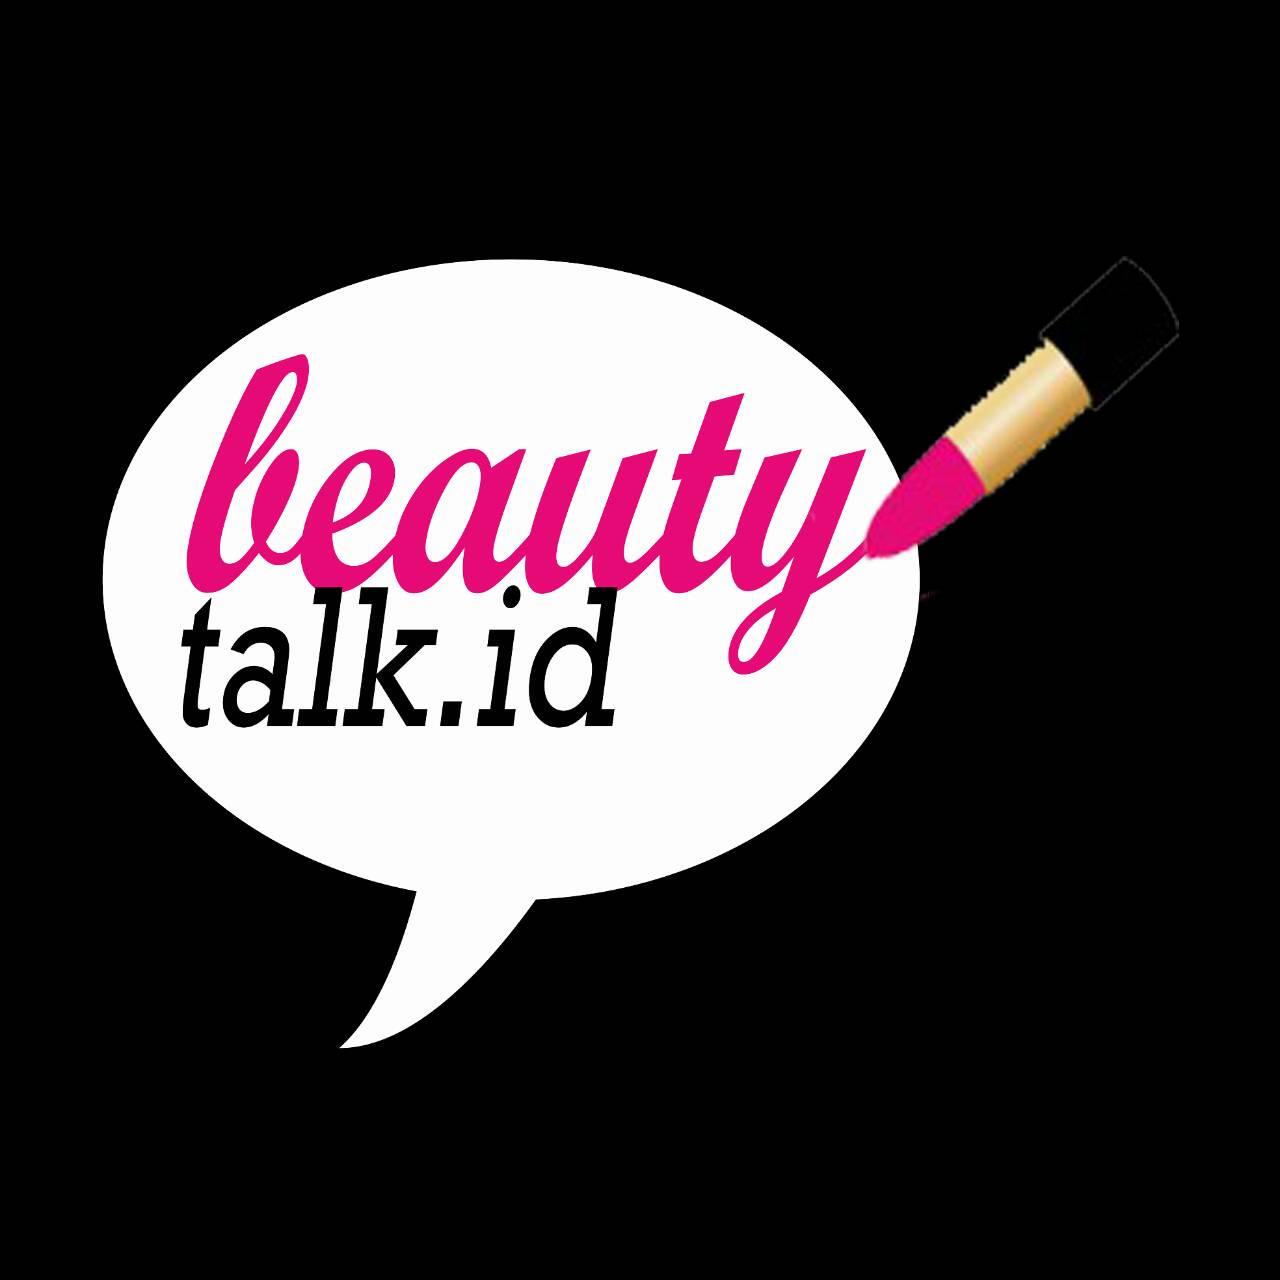 Member of: BeautyTalk.id